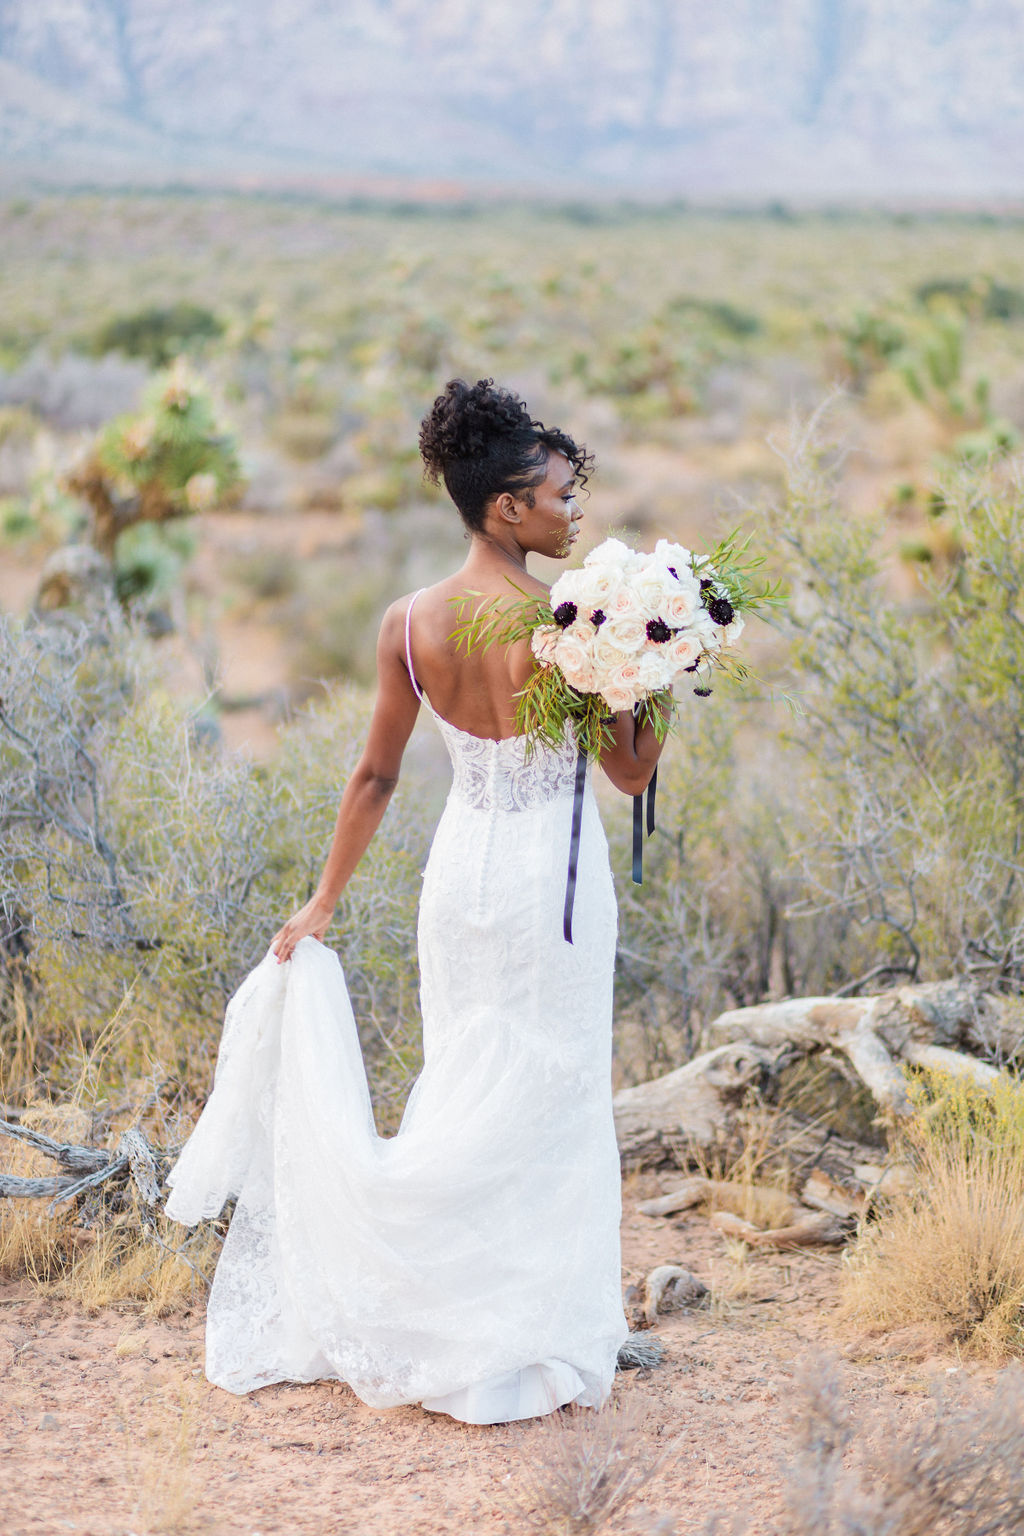 Edgy Romantic Wedding Red Rock Canyon Las Vegas Bride Elizabeth Burgi Photography 10